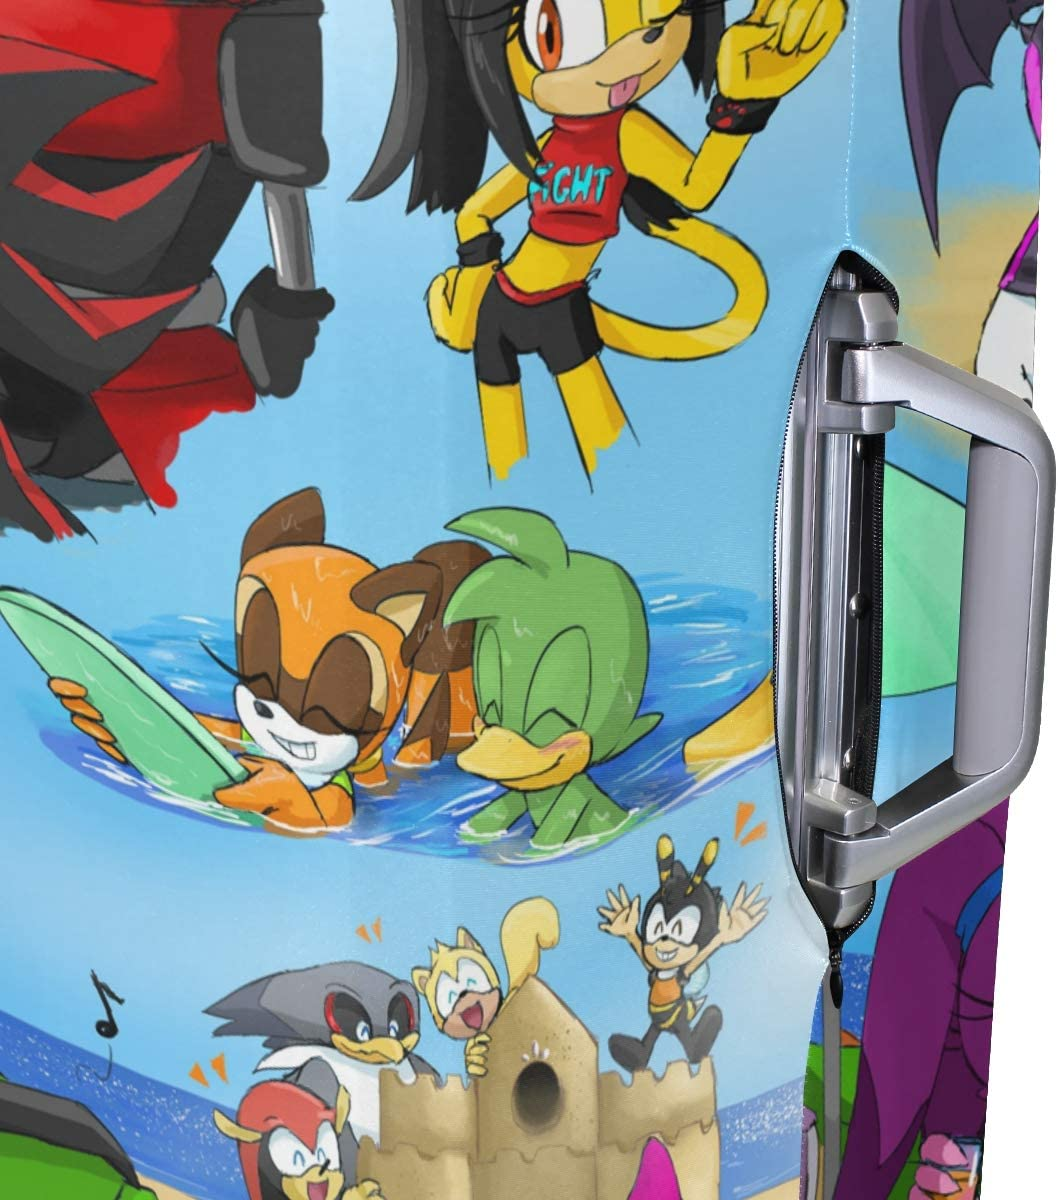 Sonic Cartoon Good Boy Travel Luggage Cover Suitcase Protector Fits 26-28 Inch Washable Baggage Covers